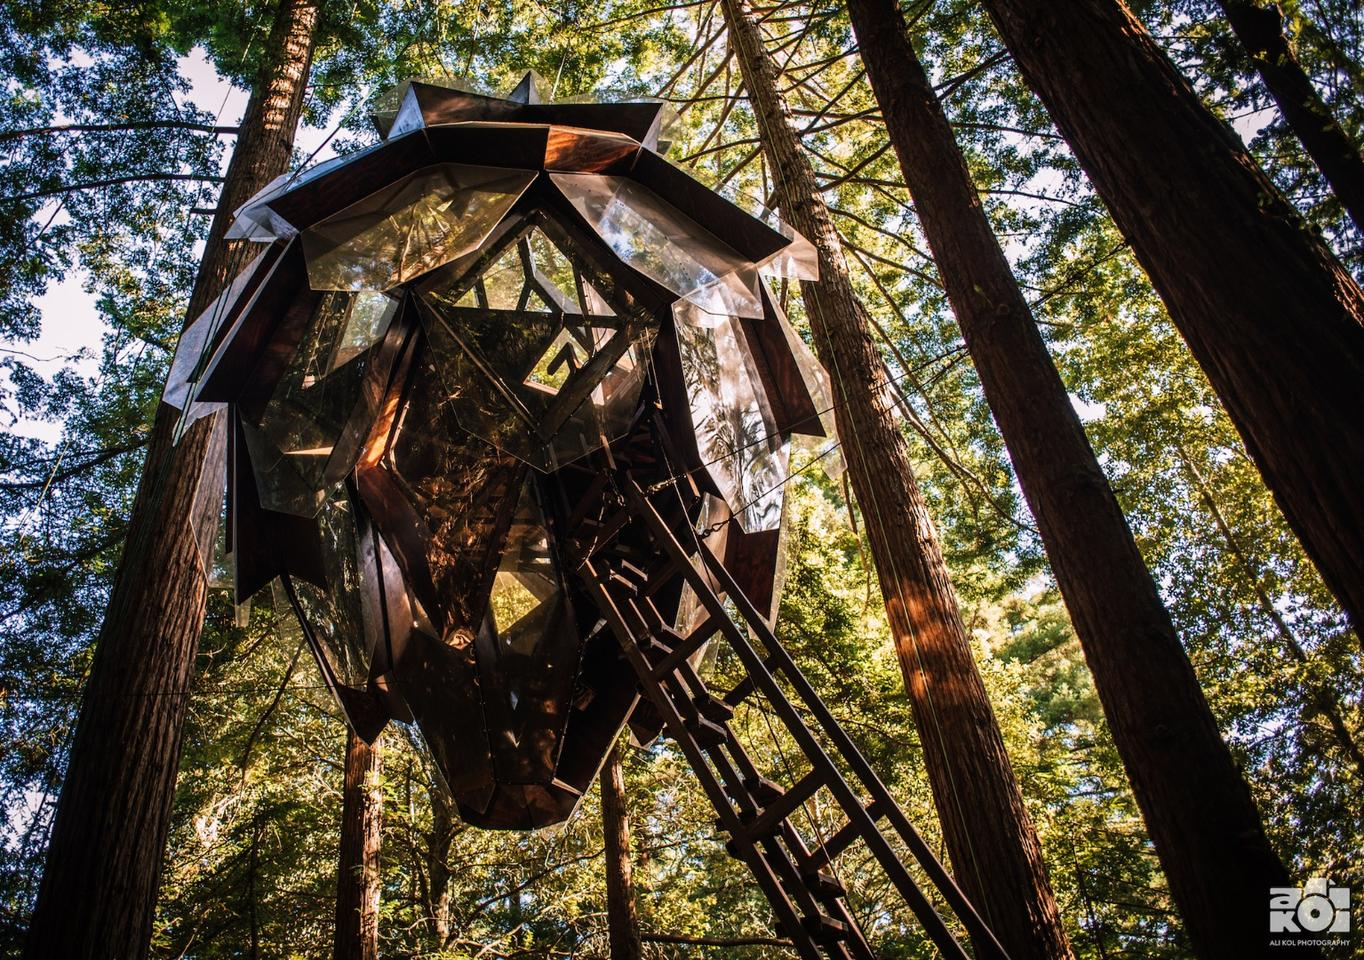 ThePinecone Treehouse is attached to the trees at a height ofaround 60 ft (15 m) above the ground